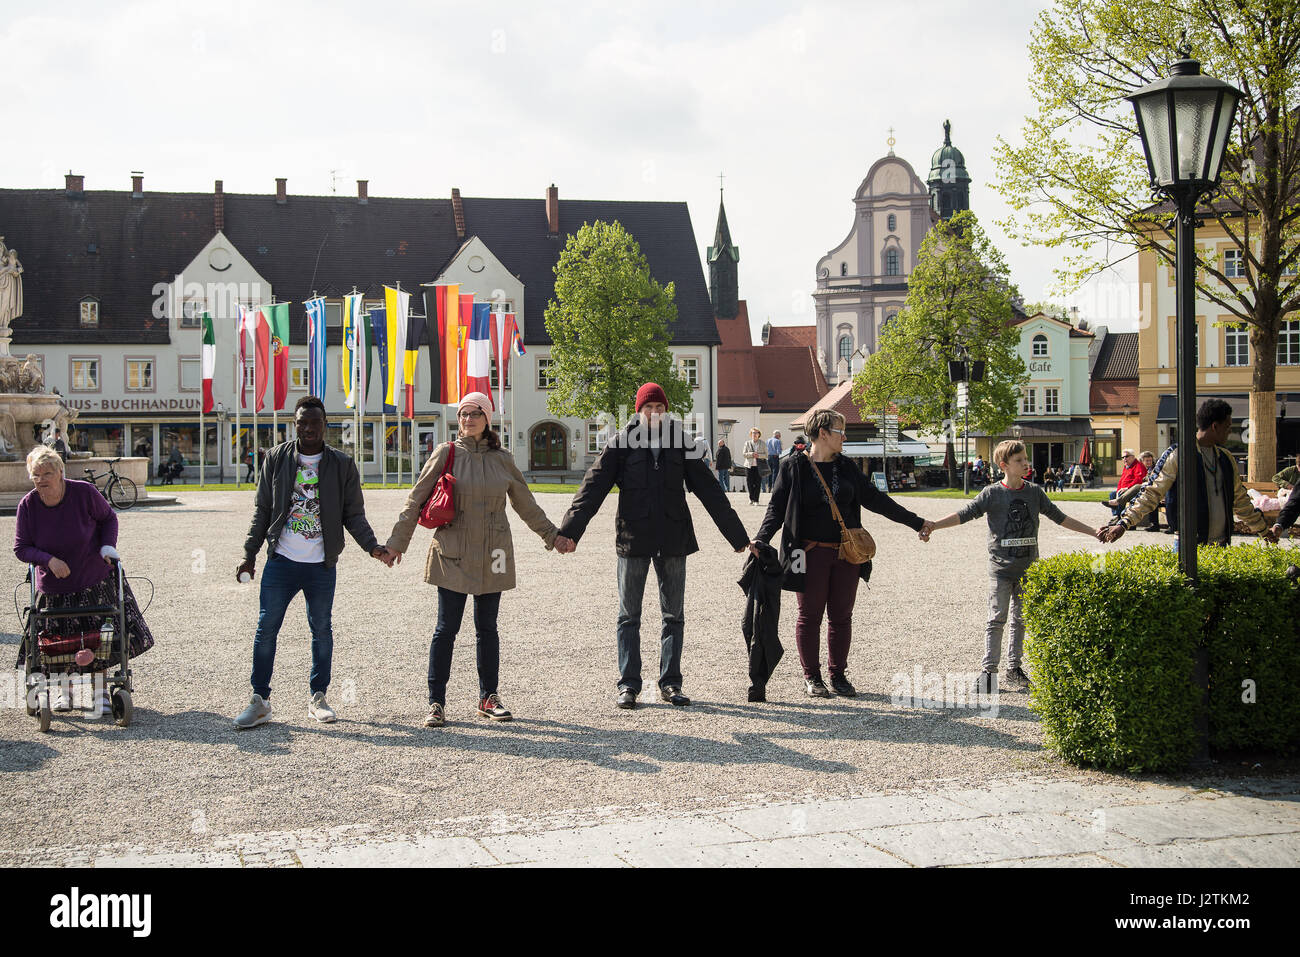 Altoetting, Germany-May 1, 2017: People protesting against the European Union's refugee policy form a human - Stock Image